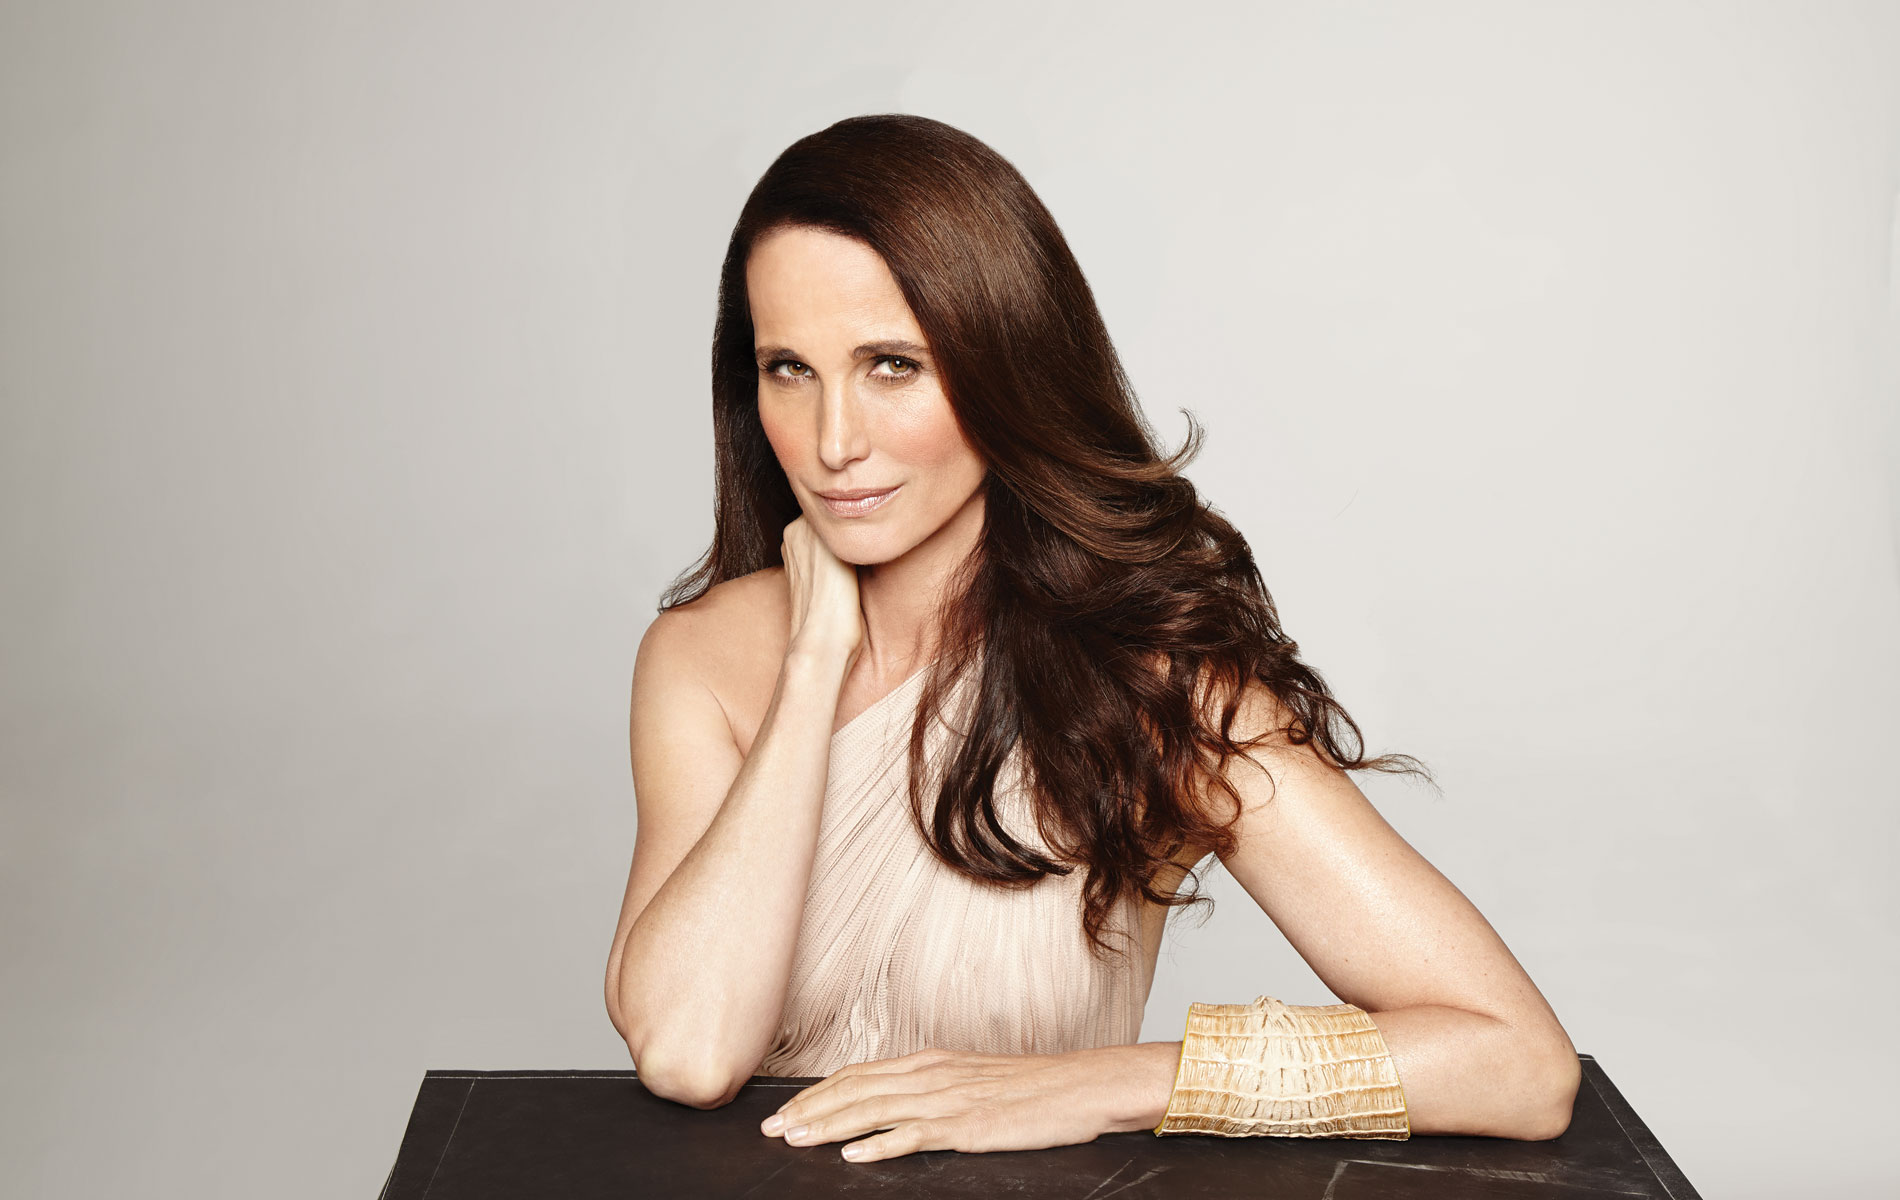 Andie Macdonald annie macdowell on maintaining her sex symbol status into